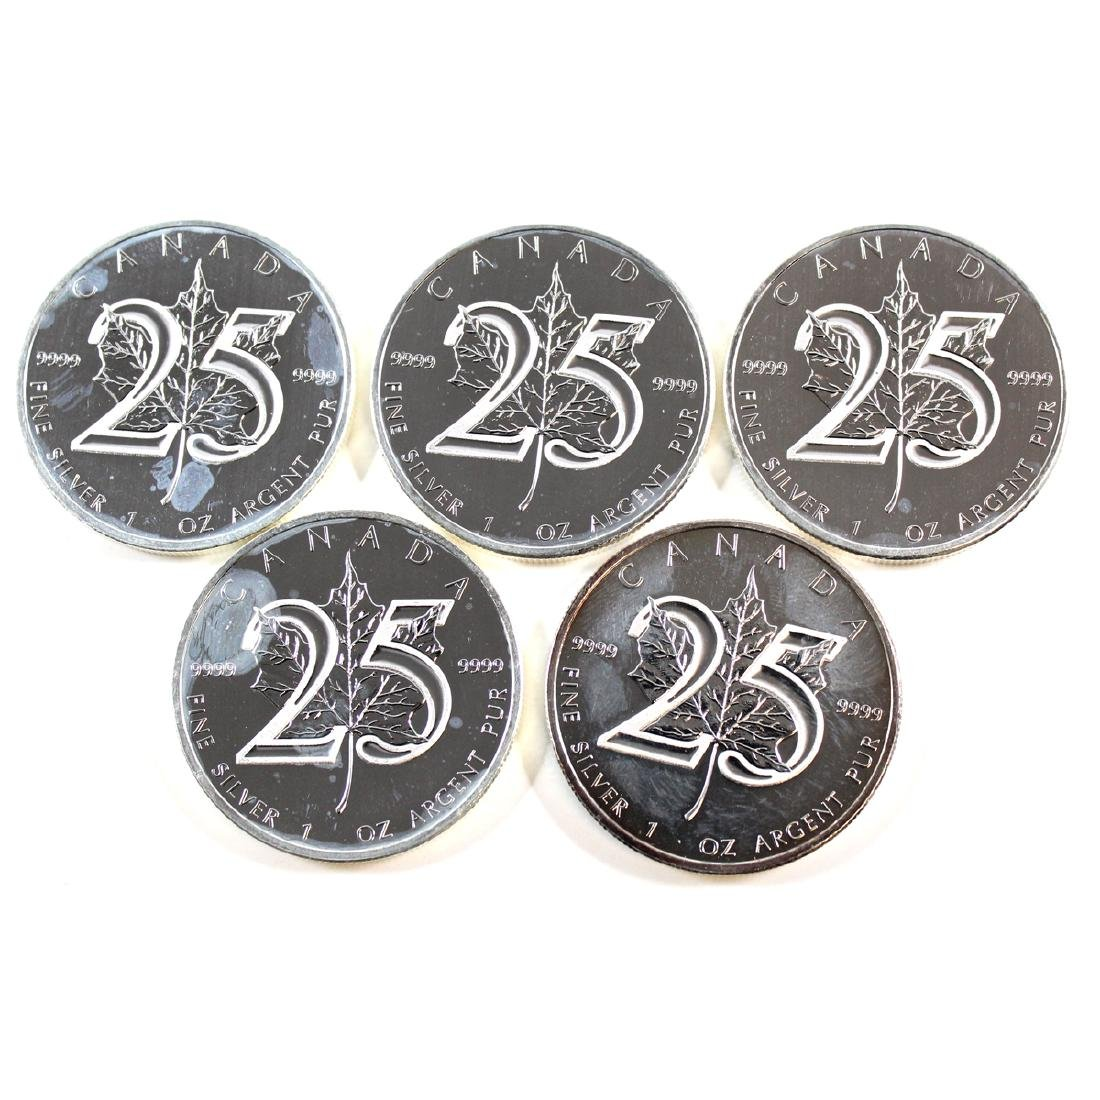 Lot of 5x 2013 Canada $5 25th Anniversary of the Maple